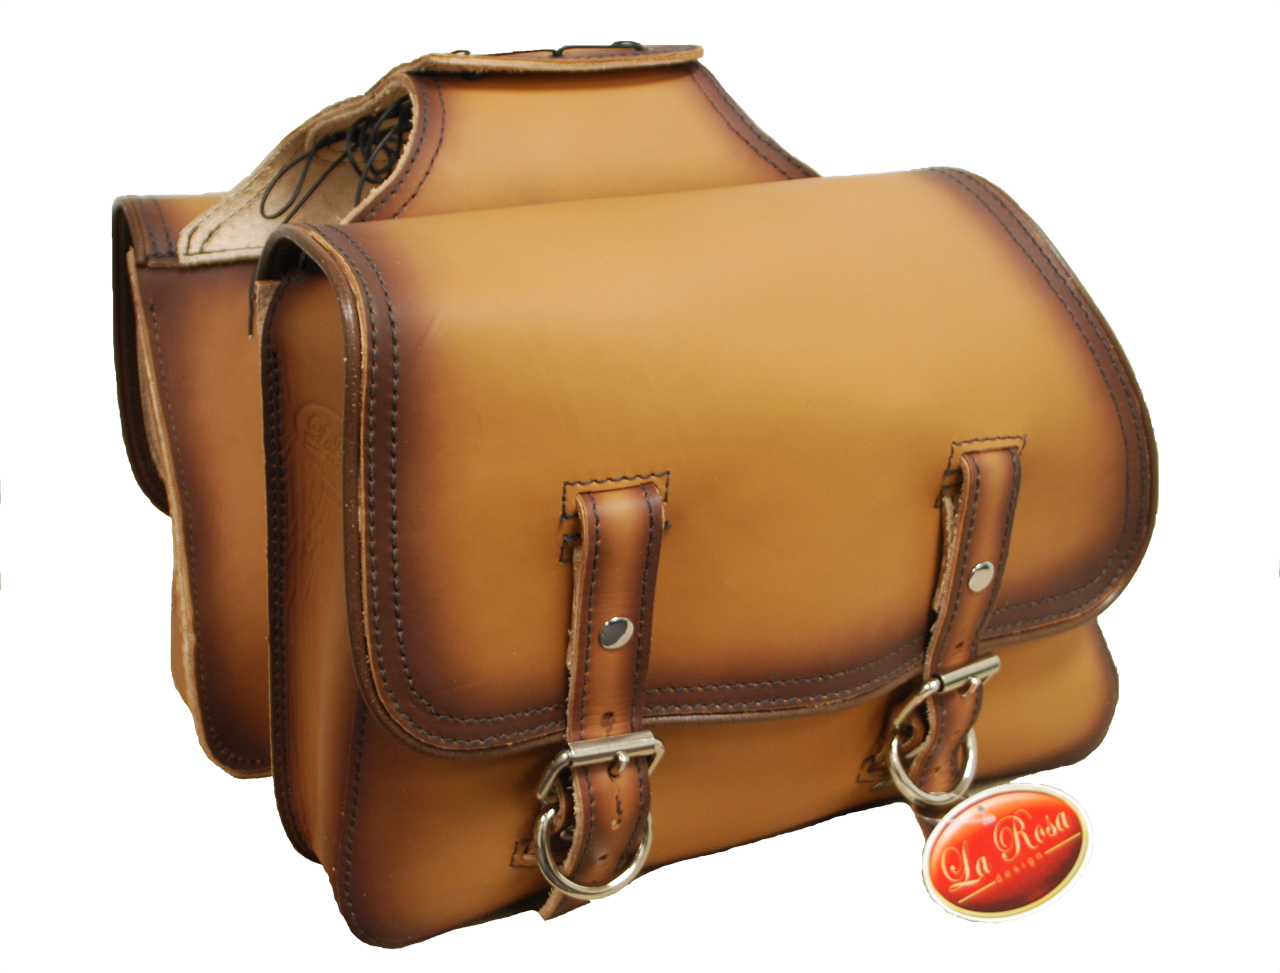 3896cce27 Universal Throw Over Saddle Bag Set Antique Tan Leather. Price: $319.99.  Image 1